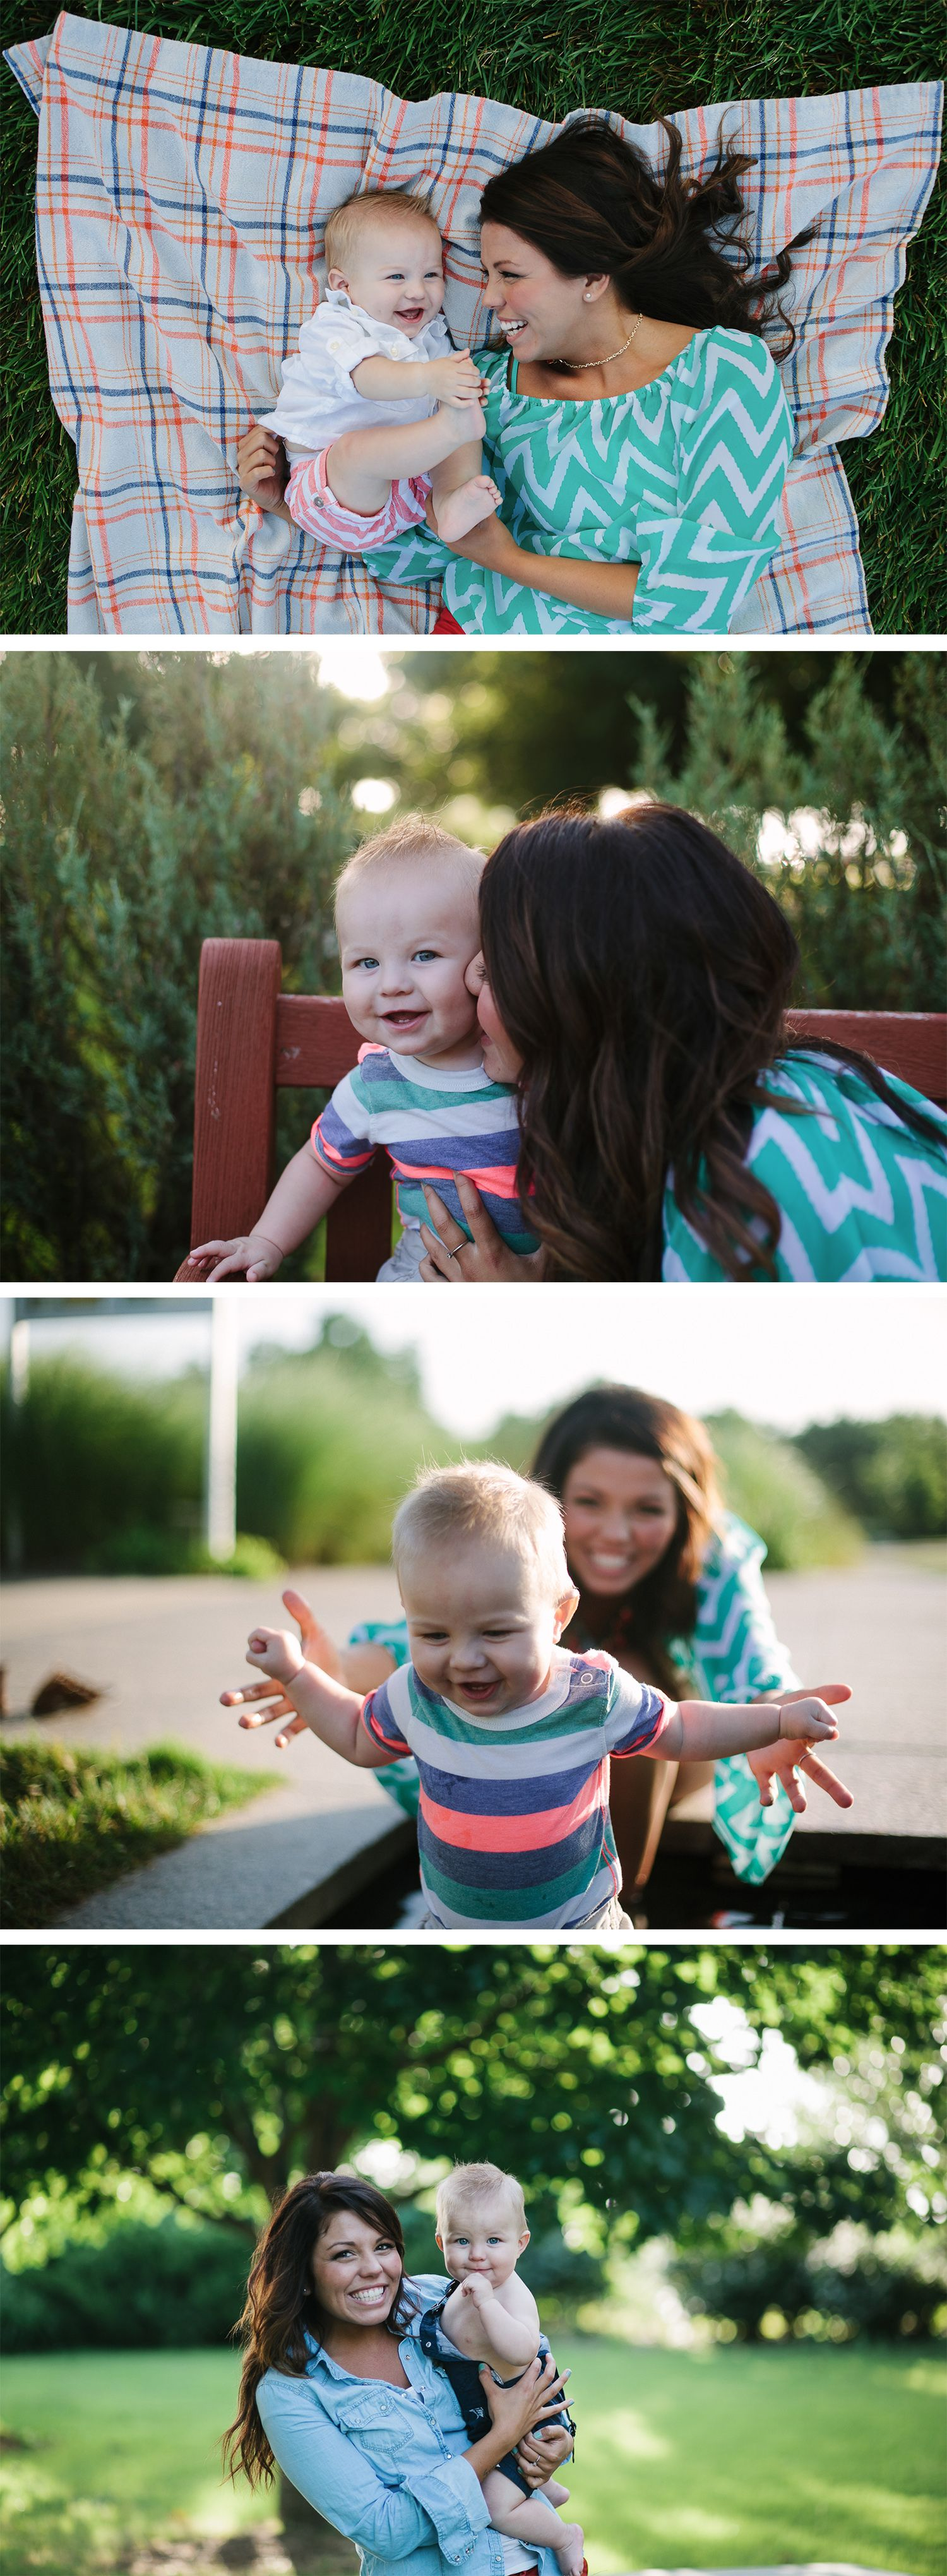 Baby mommy session :)) the 3rd shot looks like someone I know.... Weird!